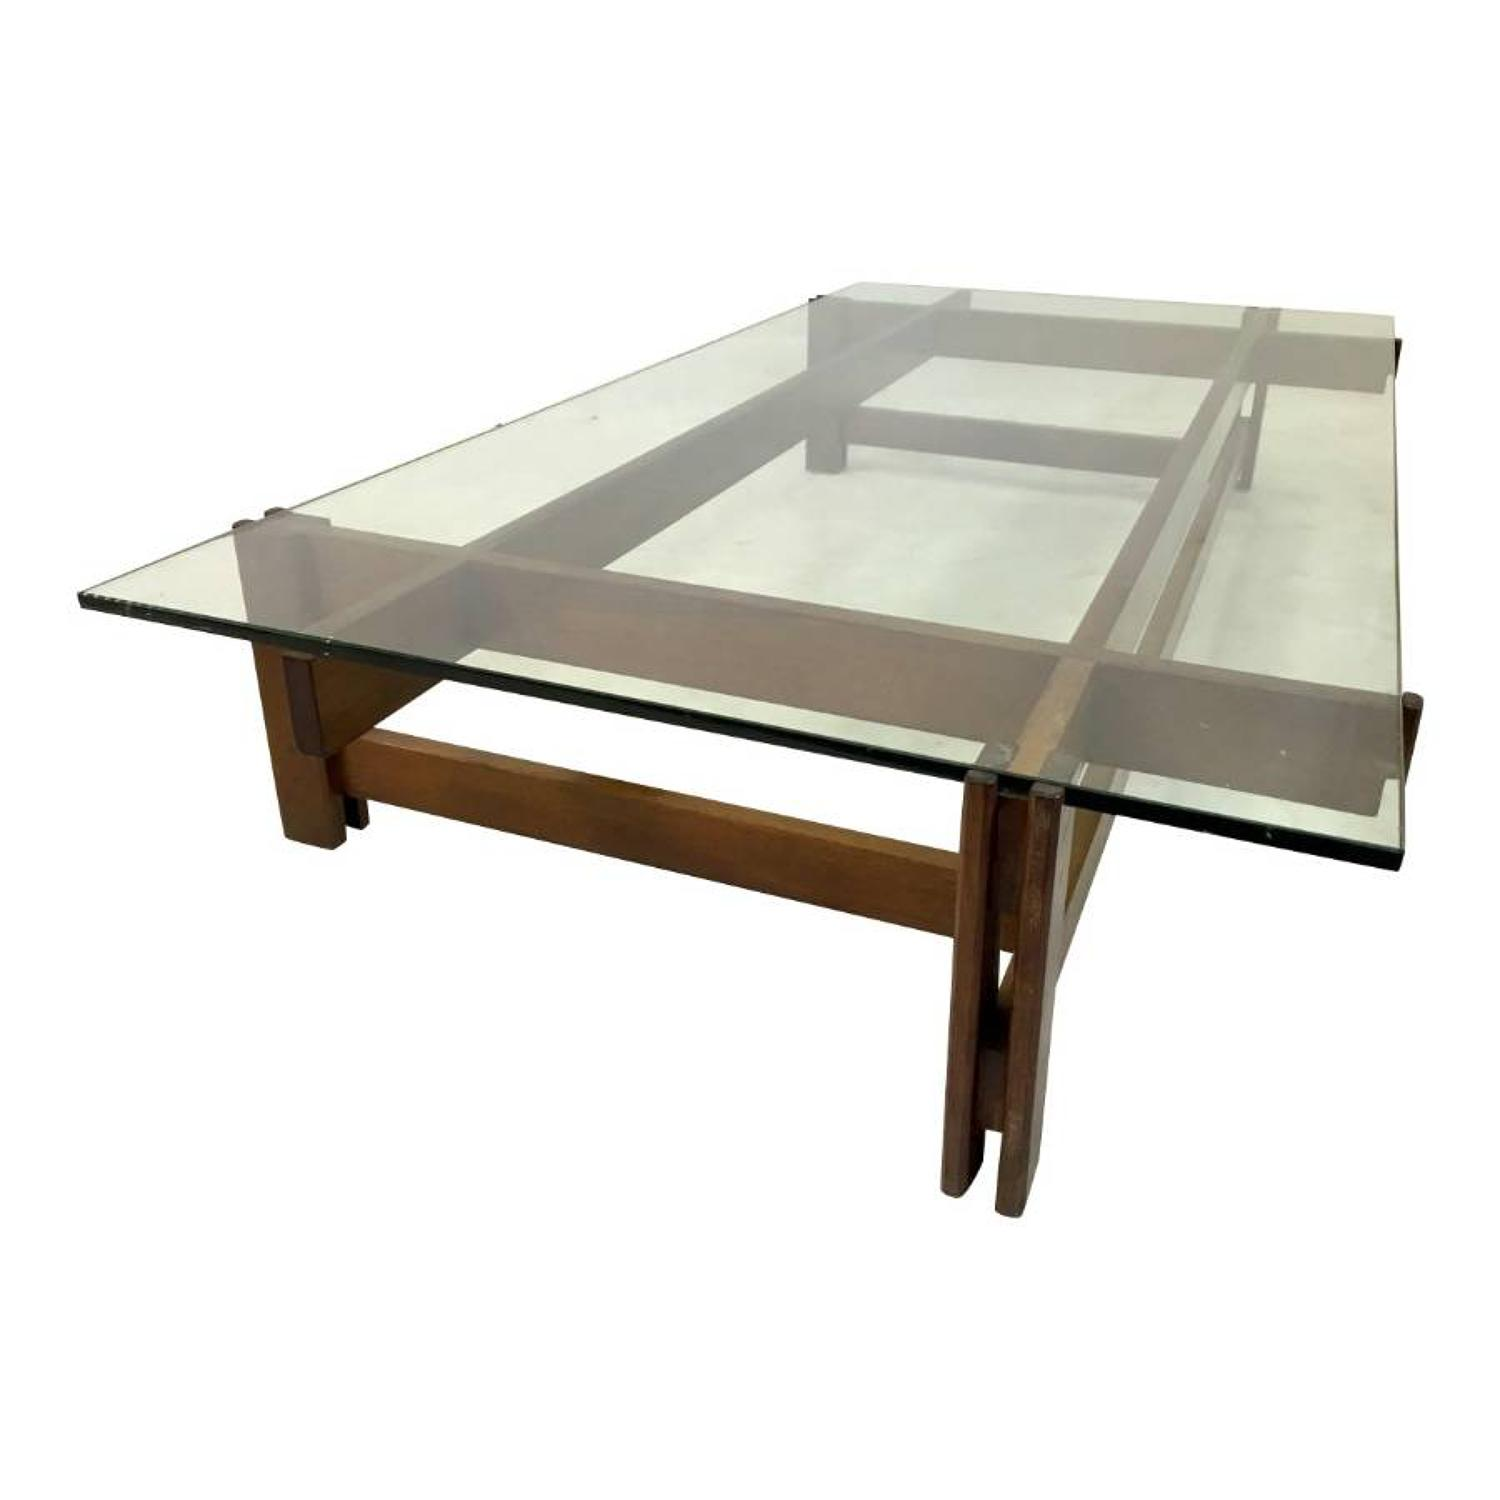 Large model 751 coffee table by Ico Parisi